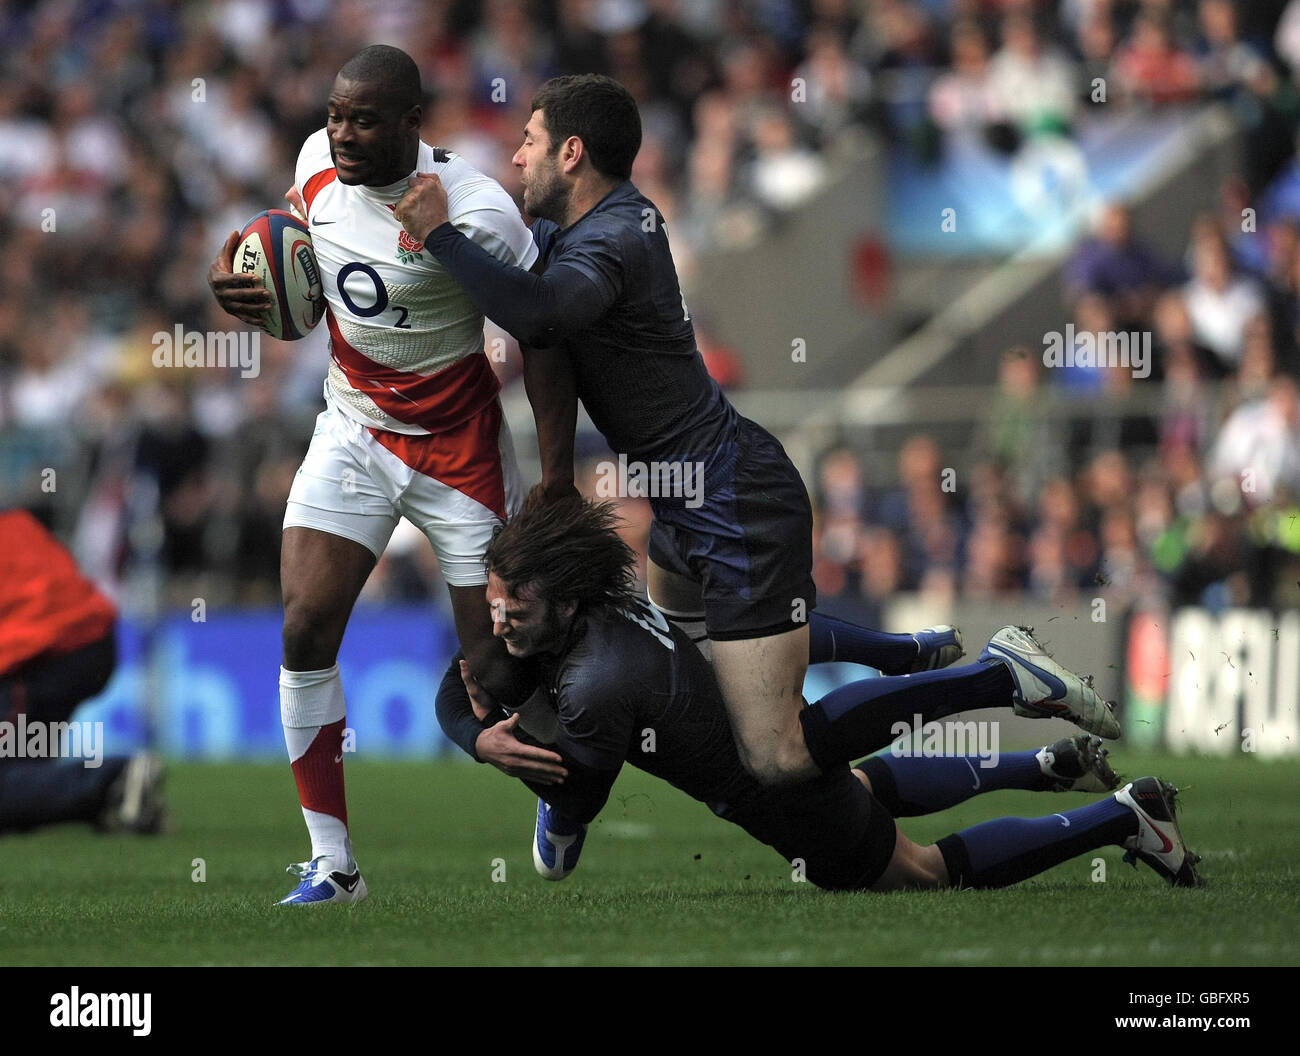 Rugby Union - RBS 6 Nations Championship 2009 - England v France - Twickenham - Stock Image